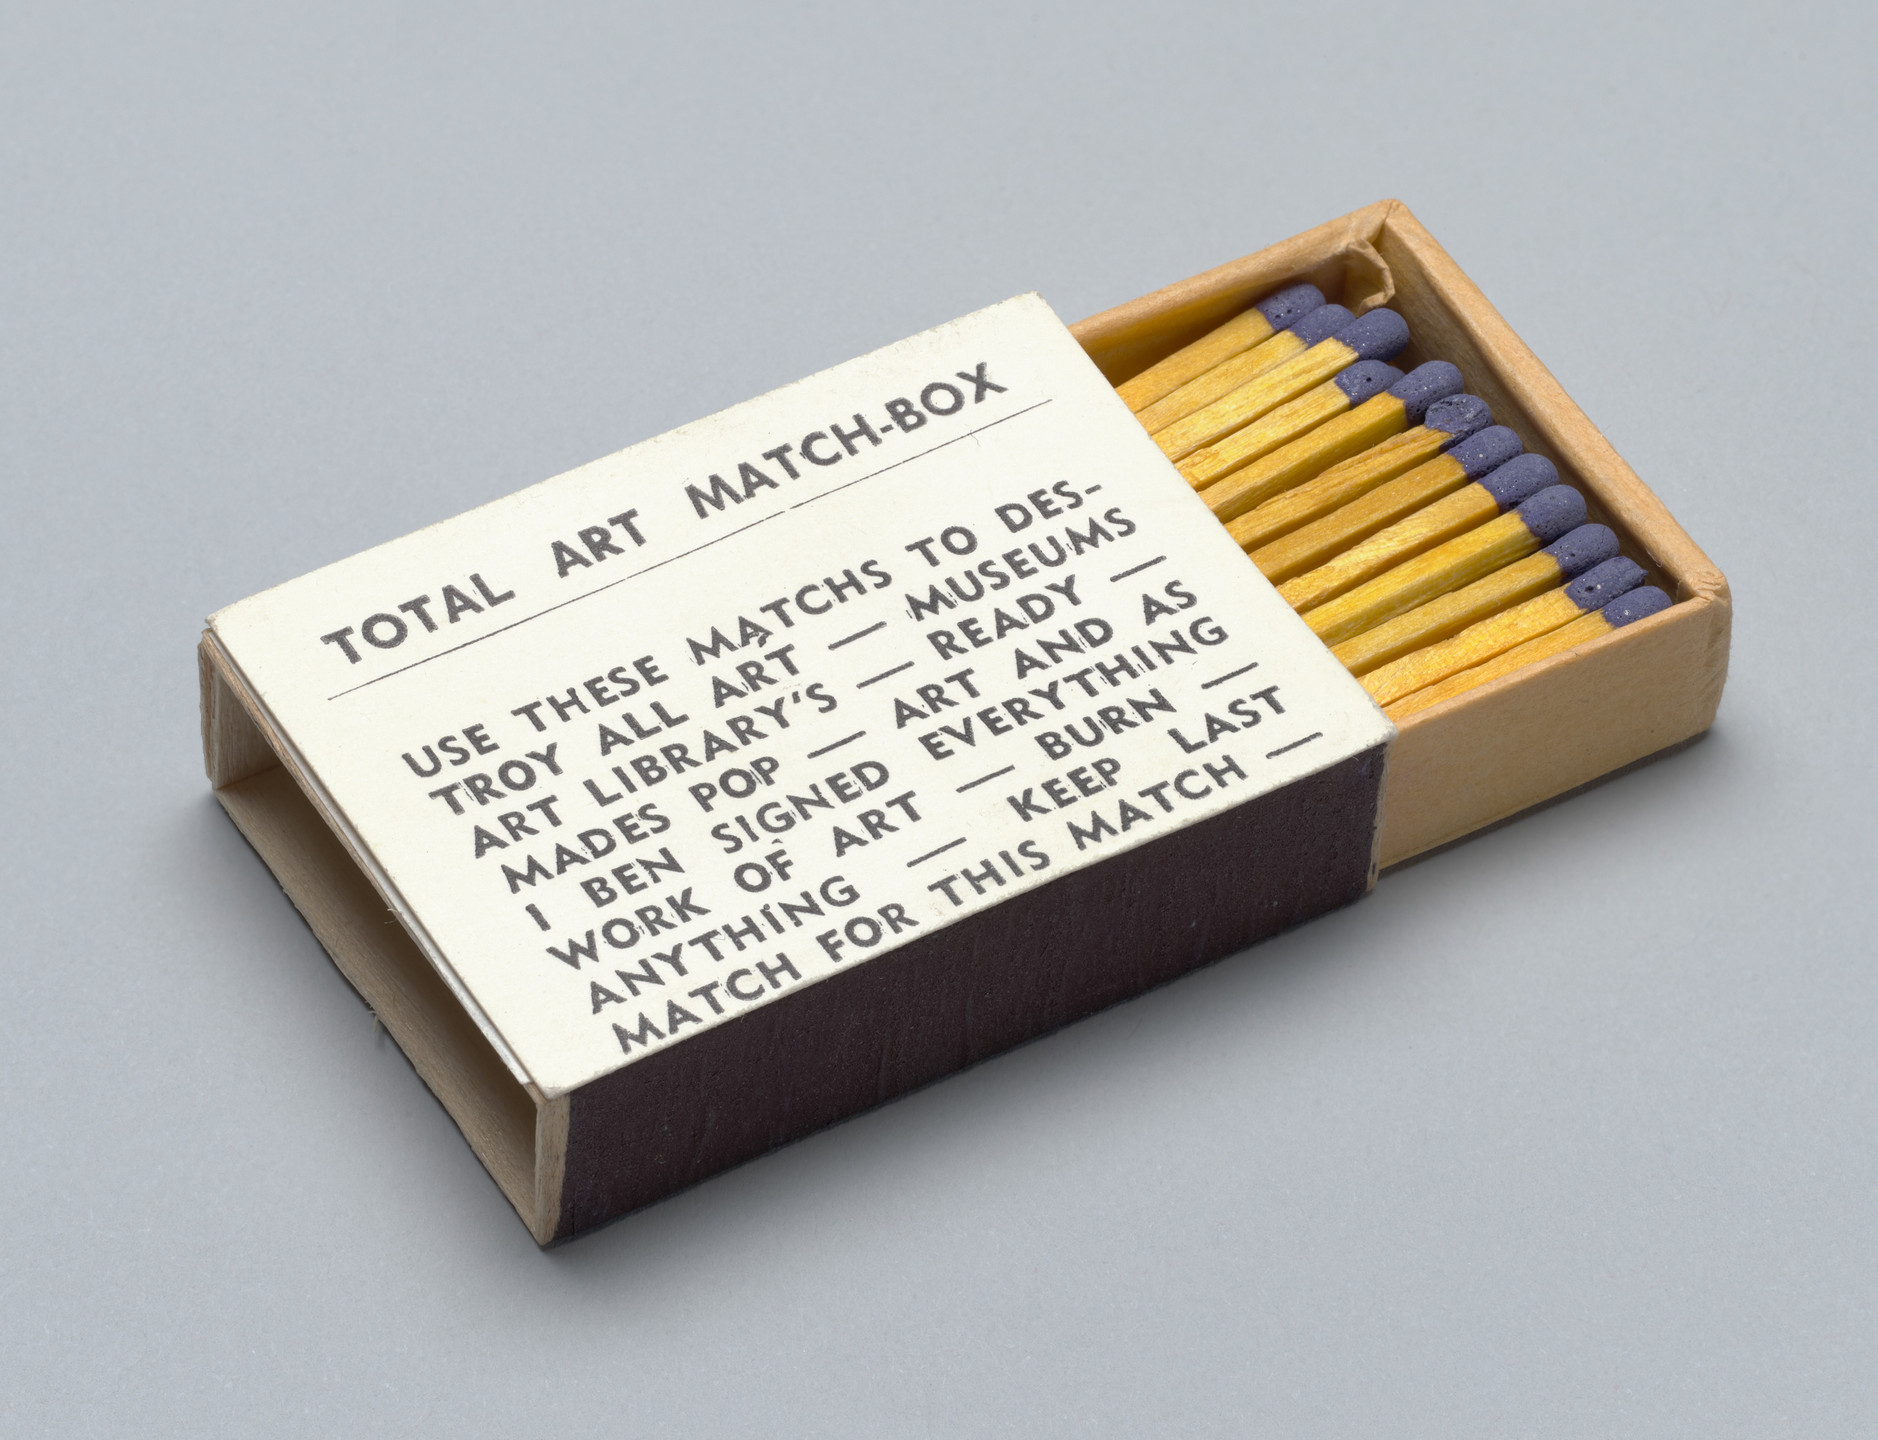 Ben Vautier. Total Art Match-Box. c. 1965